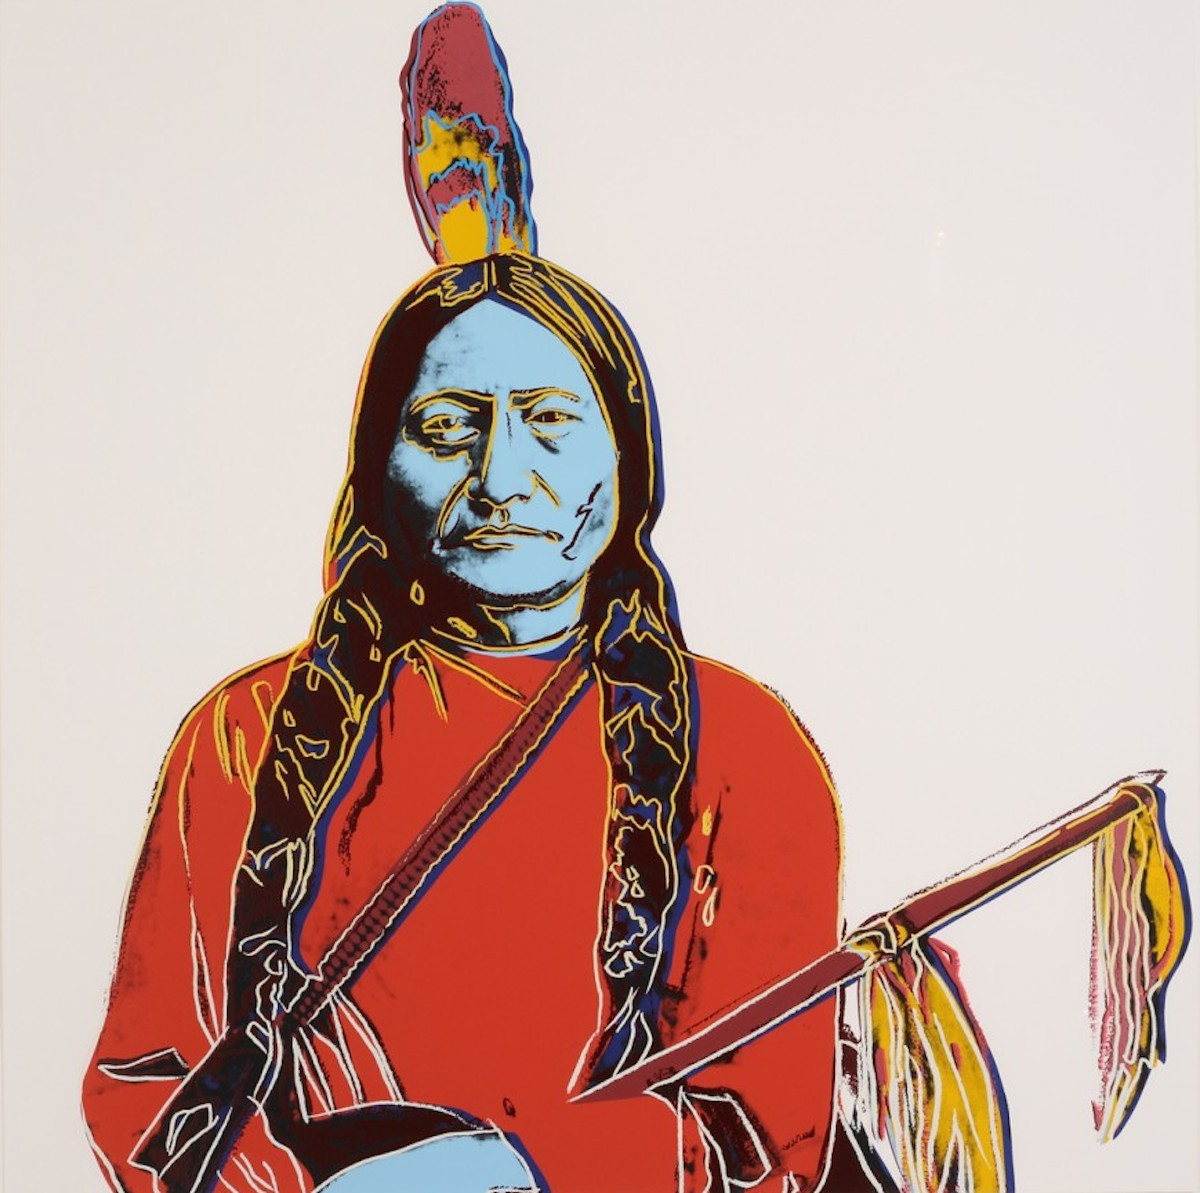 Sitting Bull by Andy Warhol